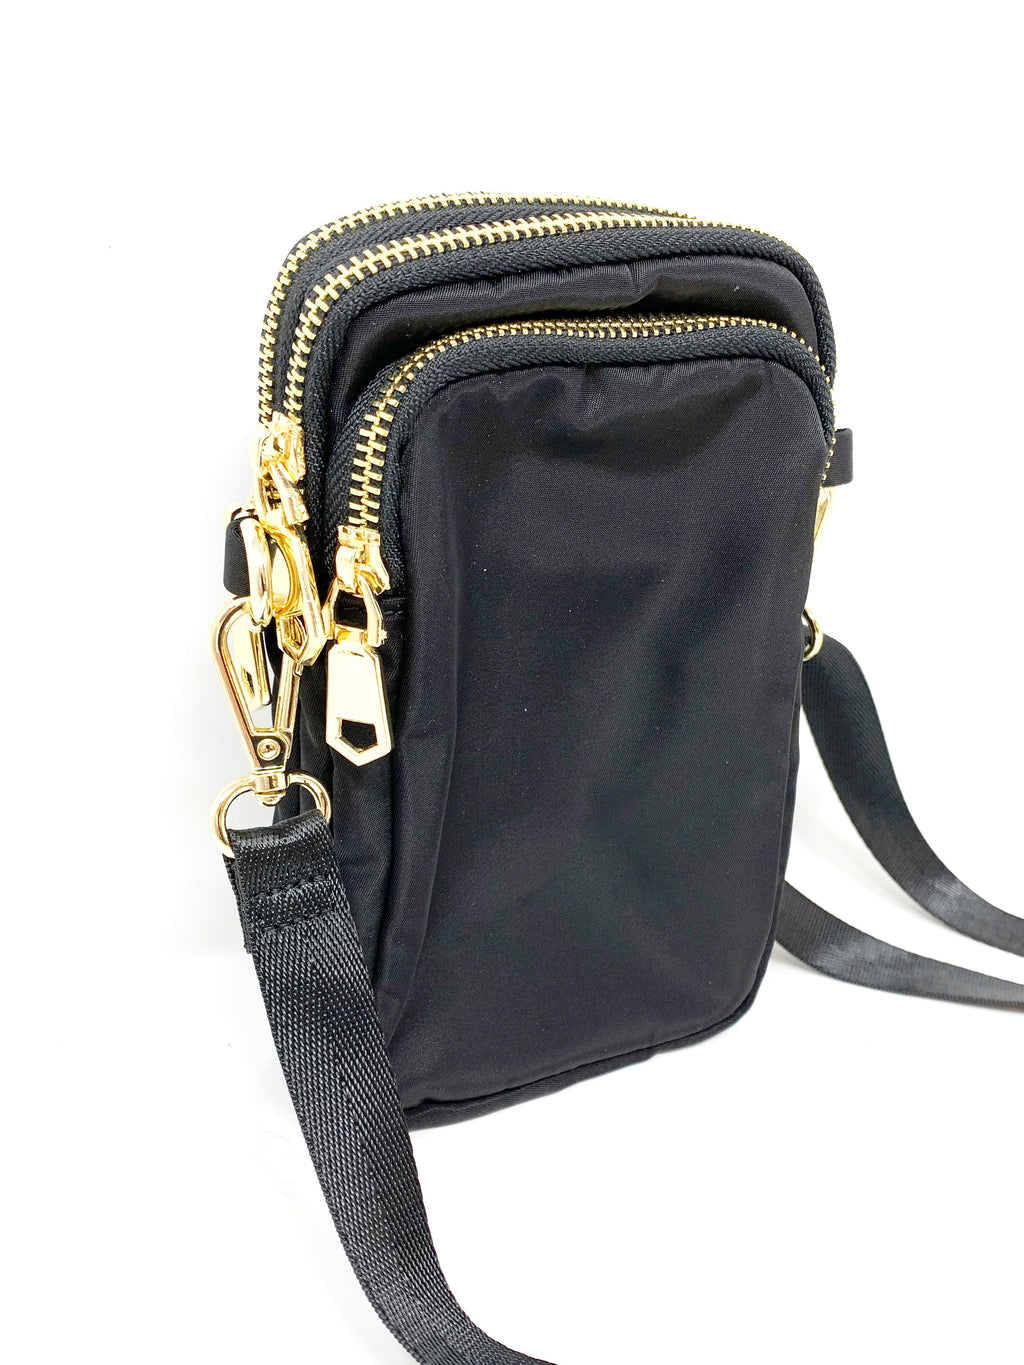 Cell Bag in Black